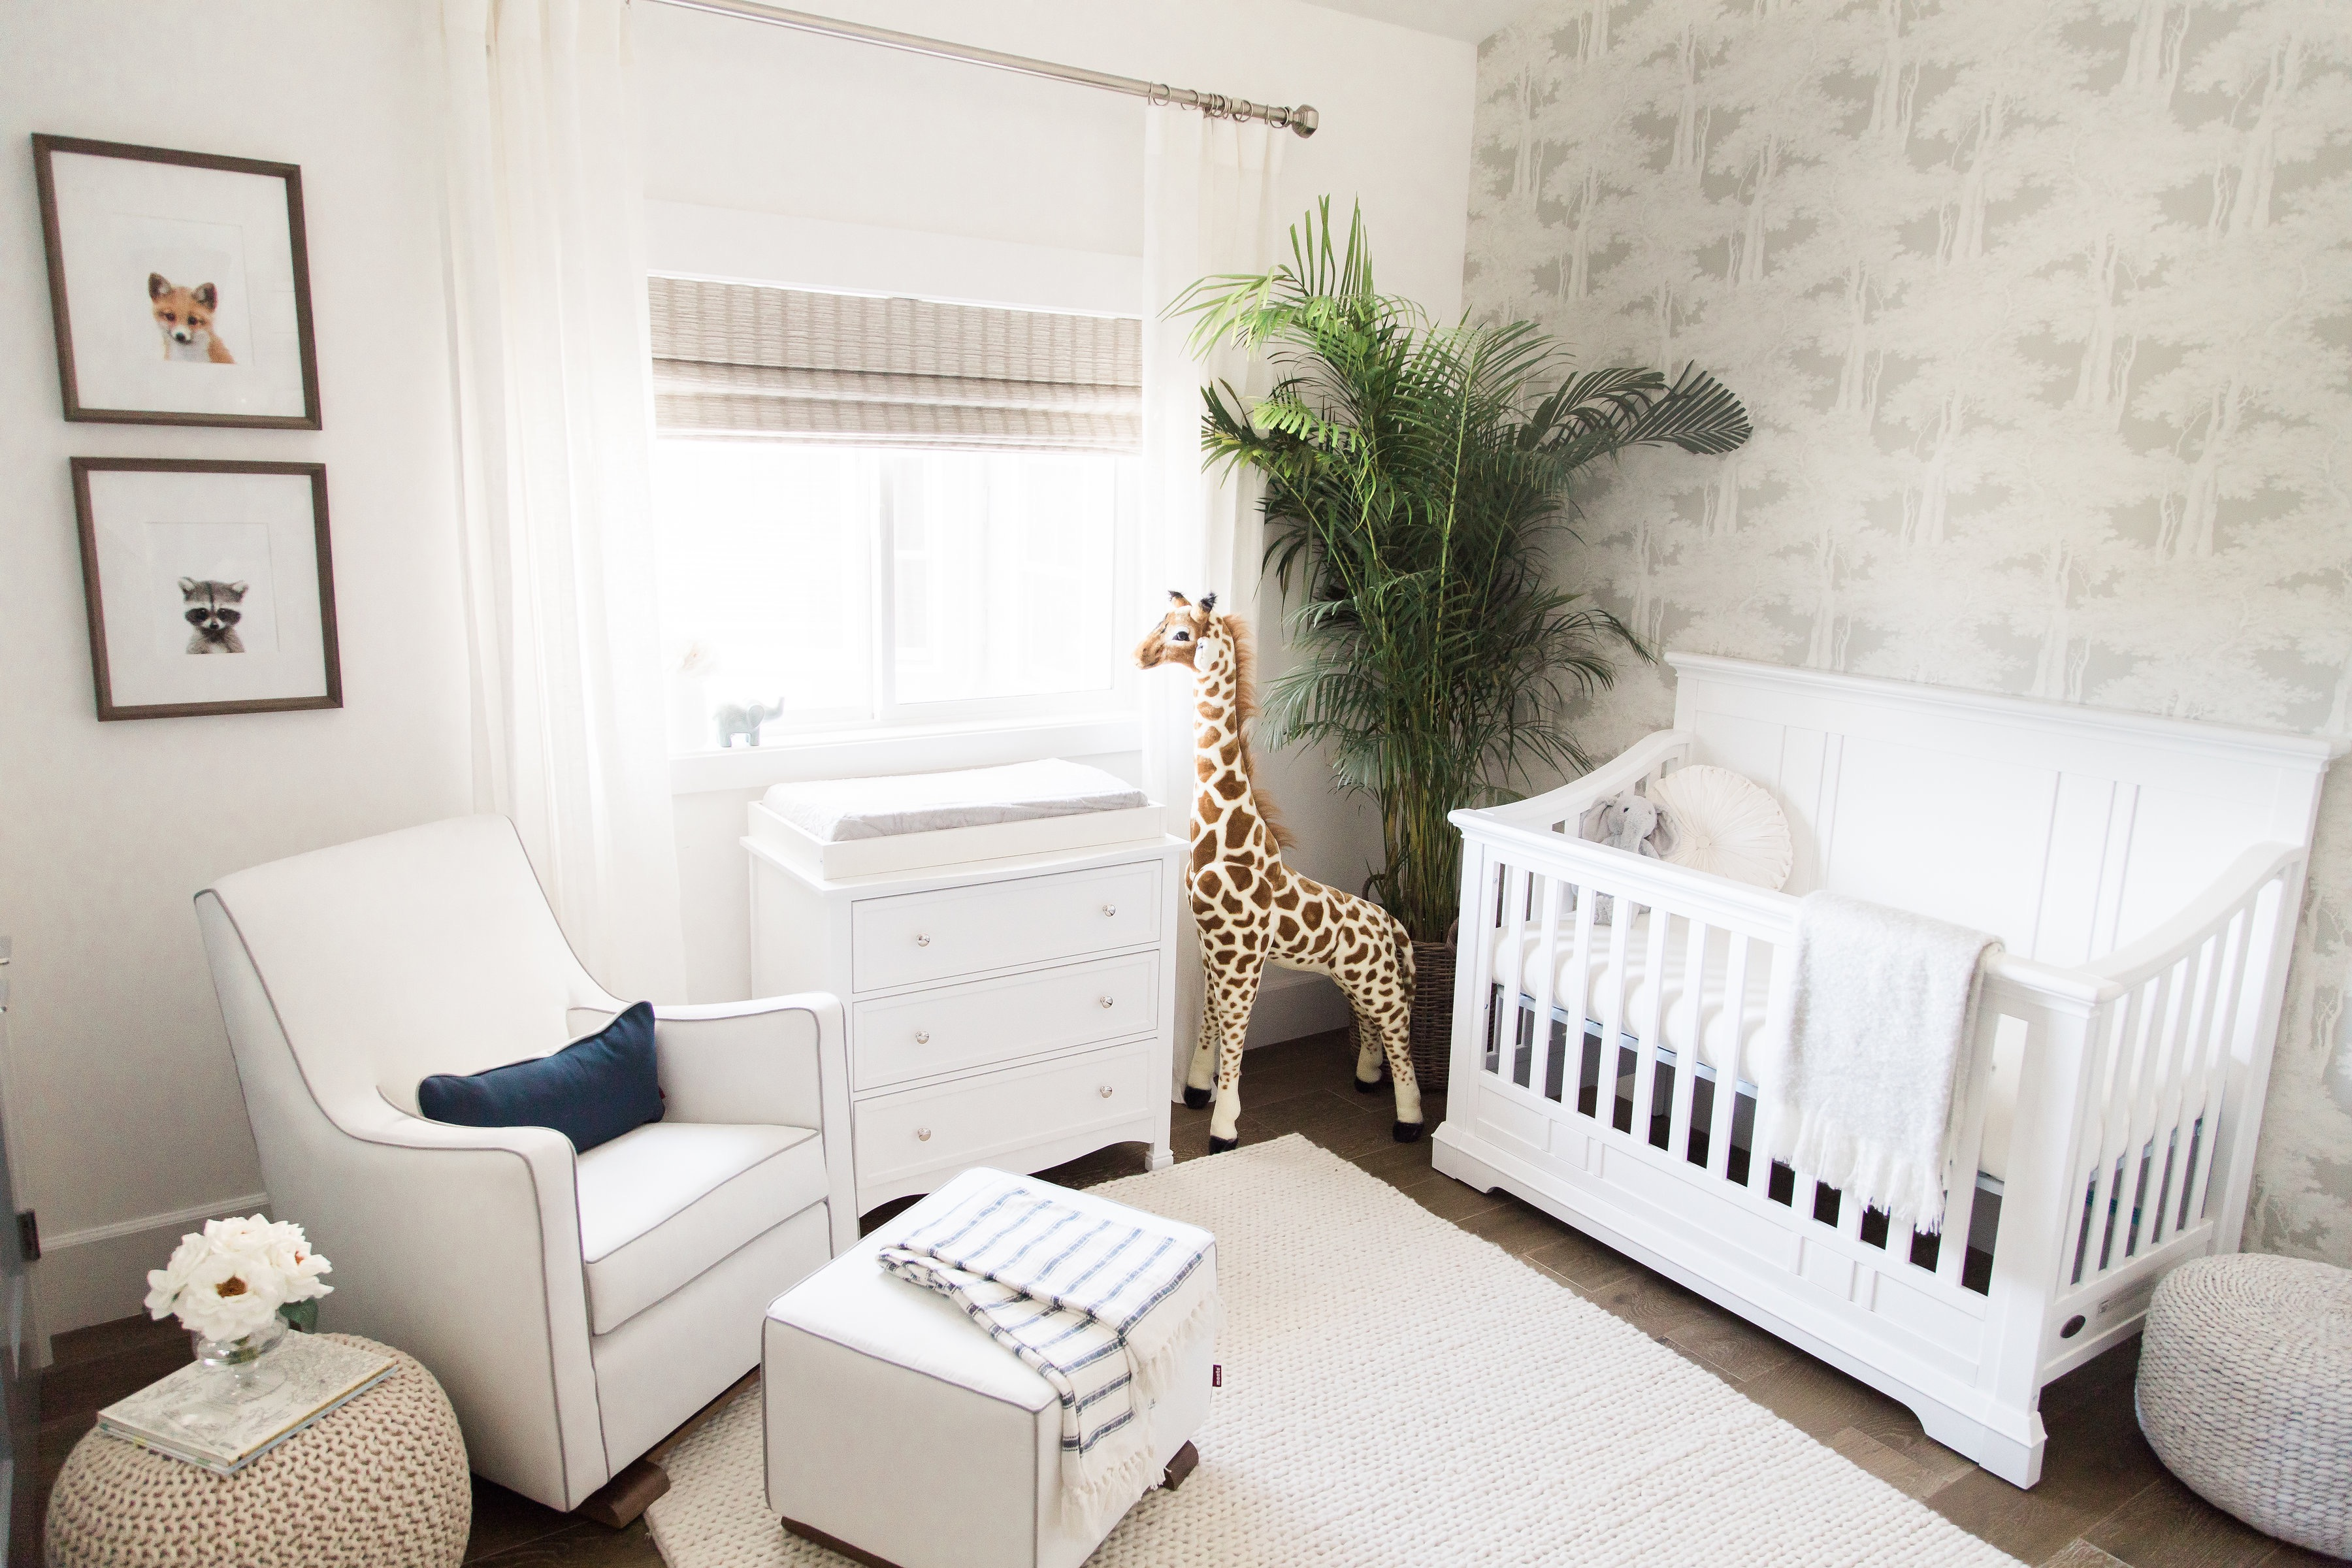 In Molly S Nursery When She Was A Baby We Just Used The Top Of Dresser As Changing Table But Since Turned Our Little Guy Into